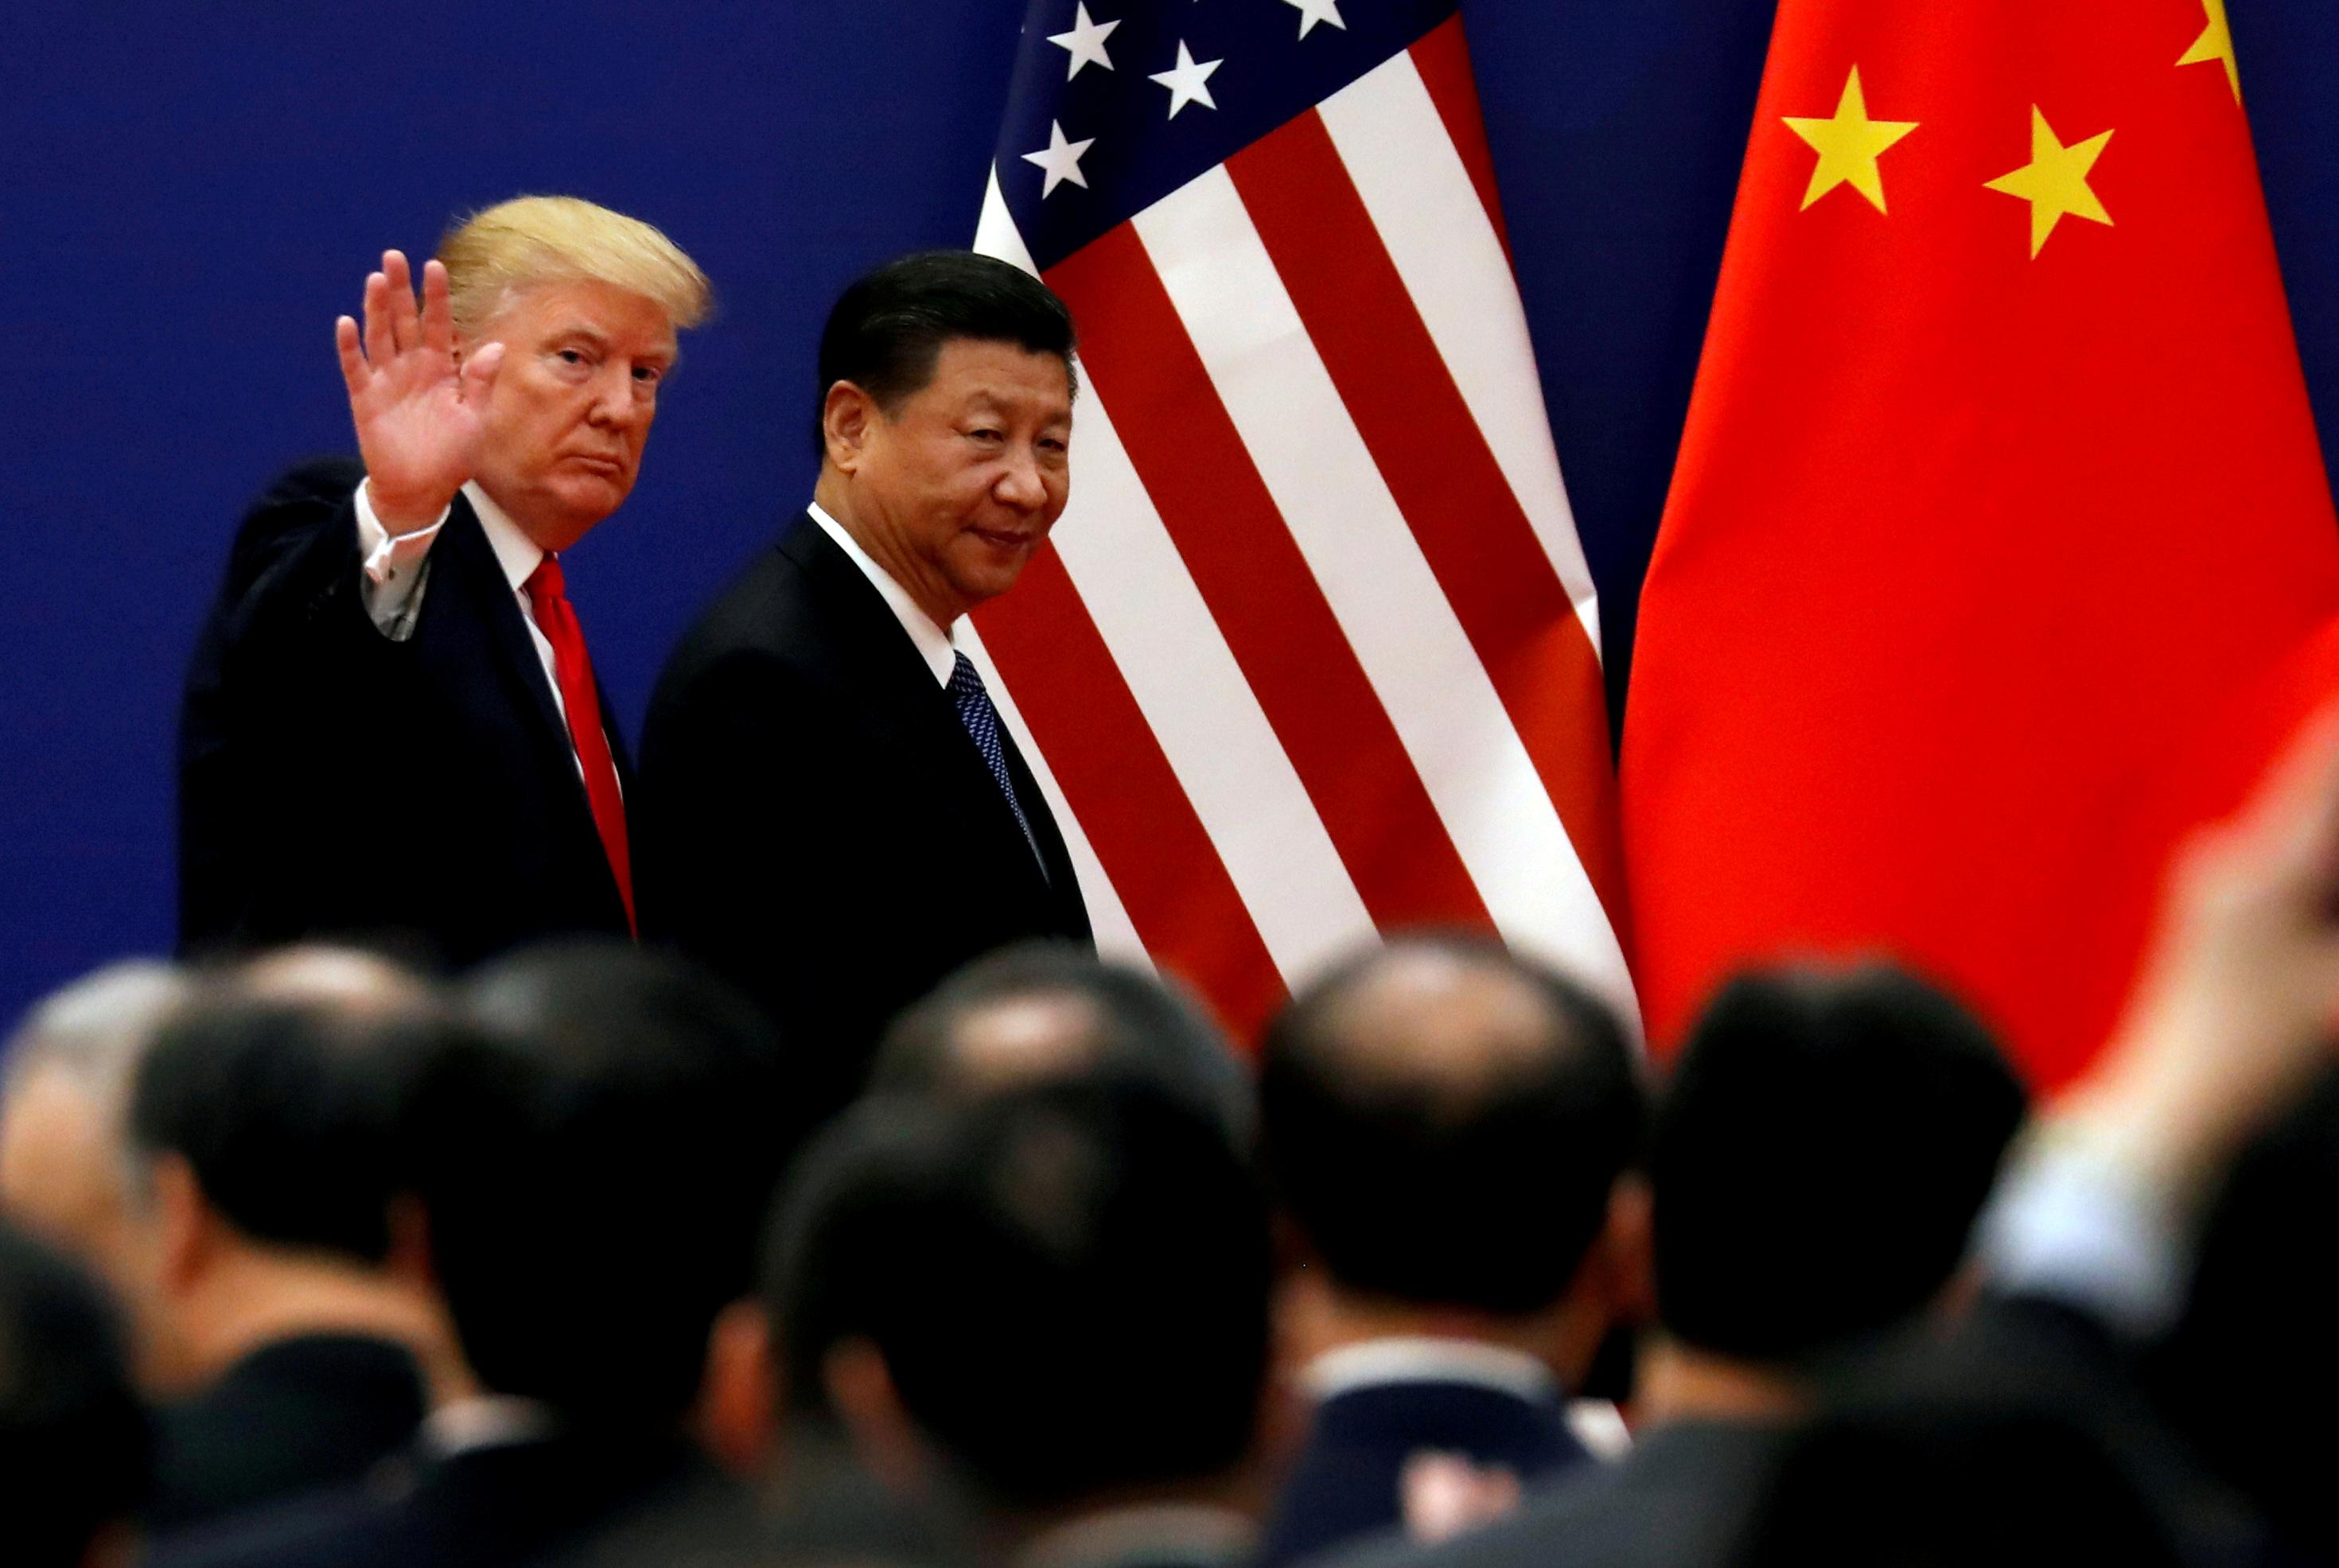 China says Trump, Xi will discuss whatever they want at G20 meeting